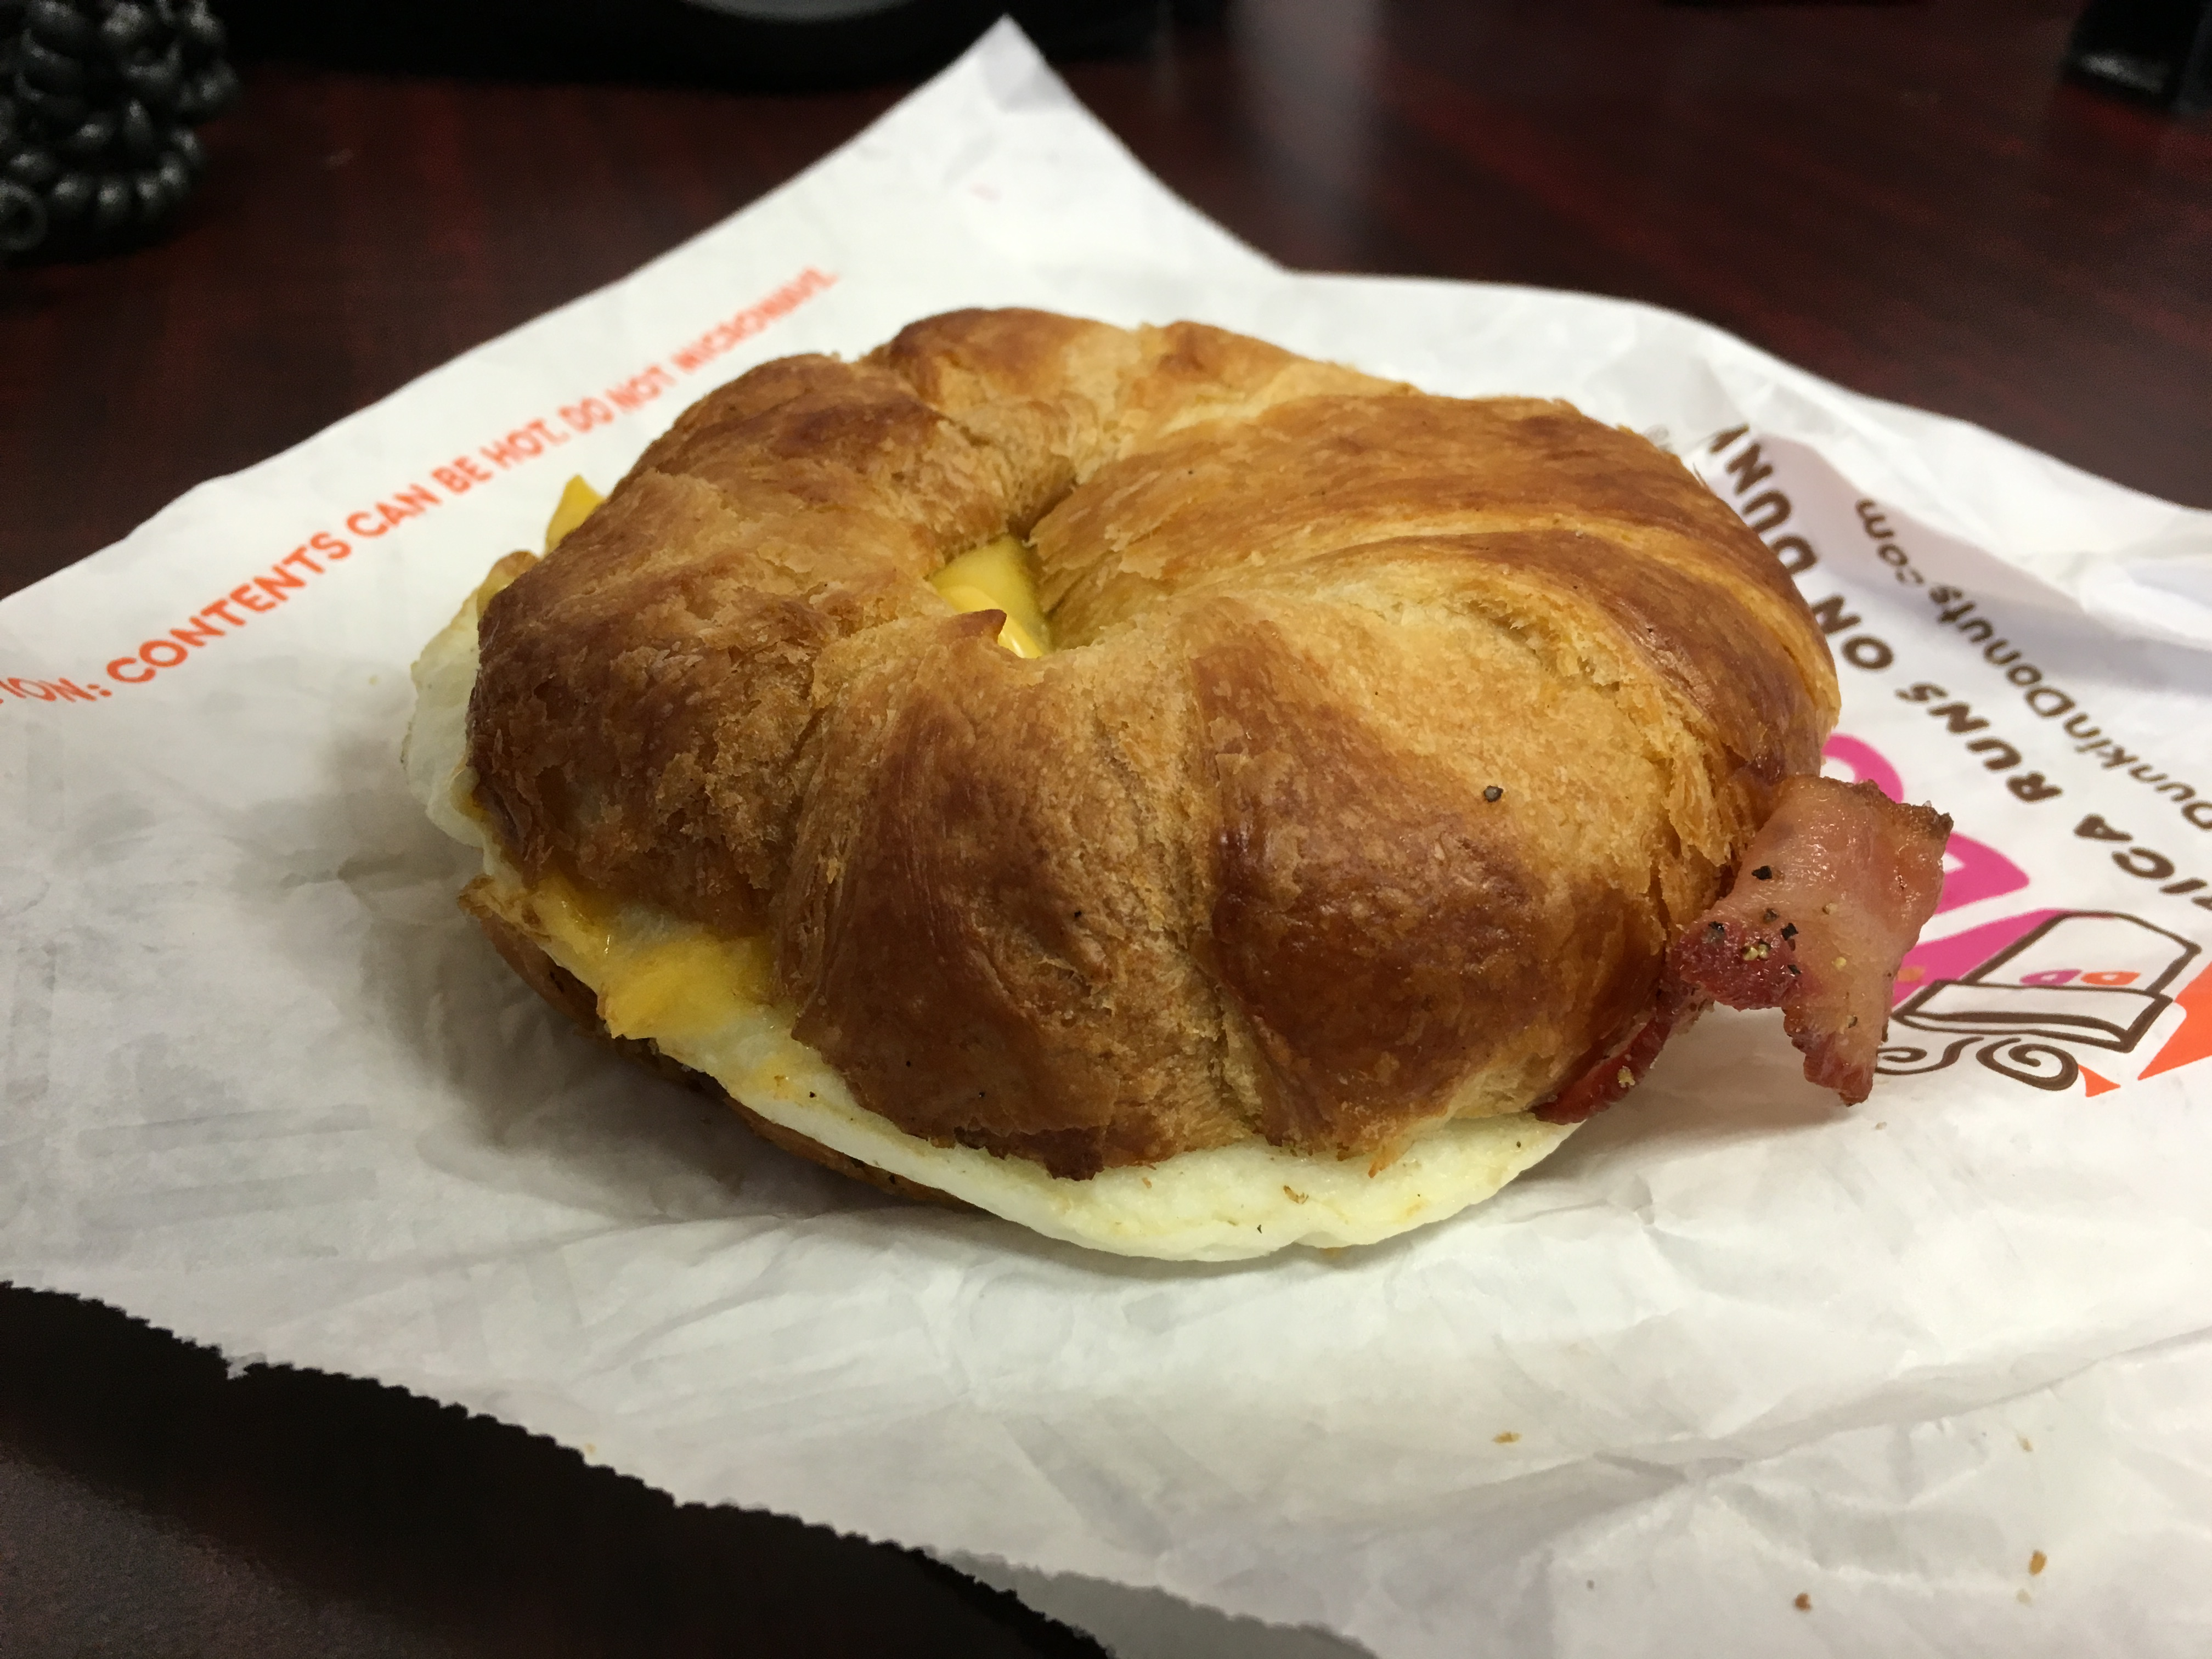 dunkin donuts price